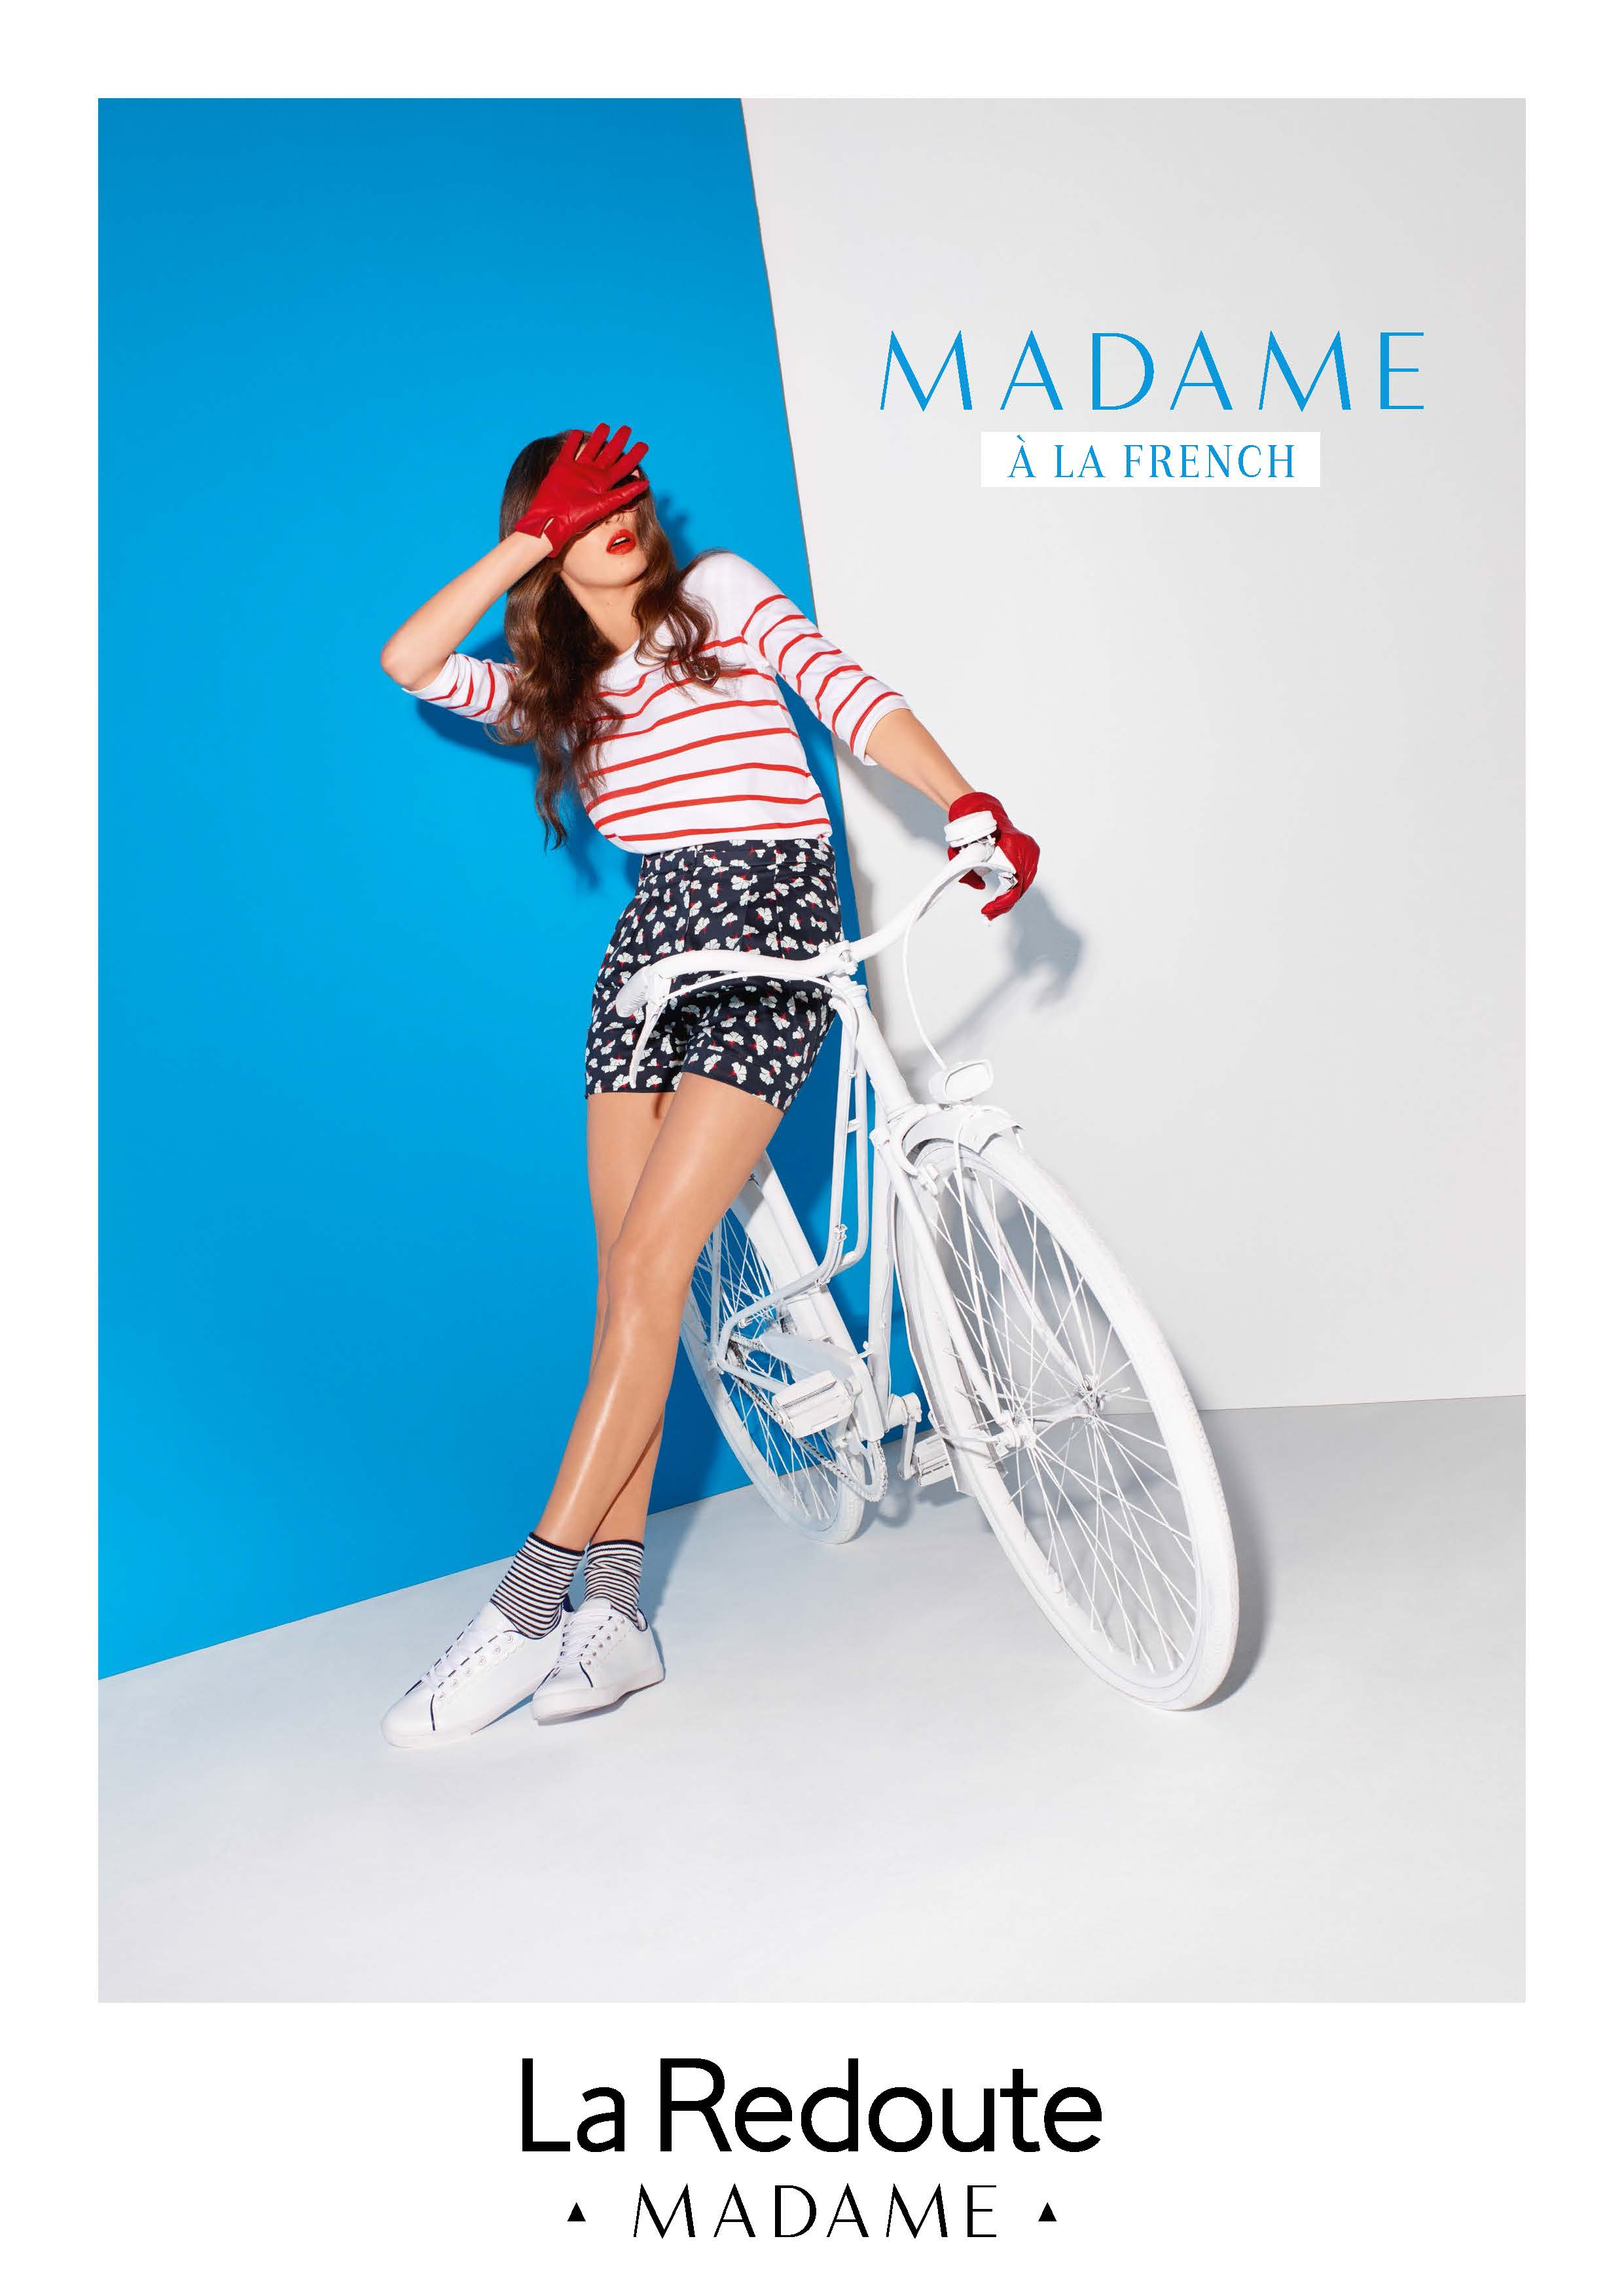 la-redoute-madame-2016-publicite-marketing-marque-mode-femme-france-agence-fred-farid-9